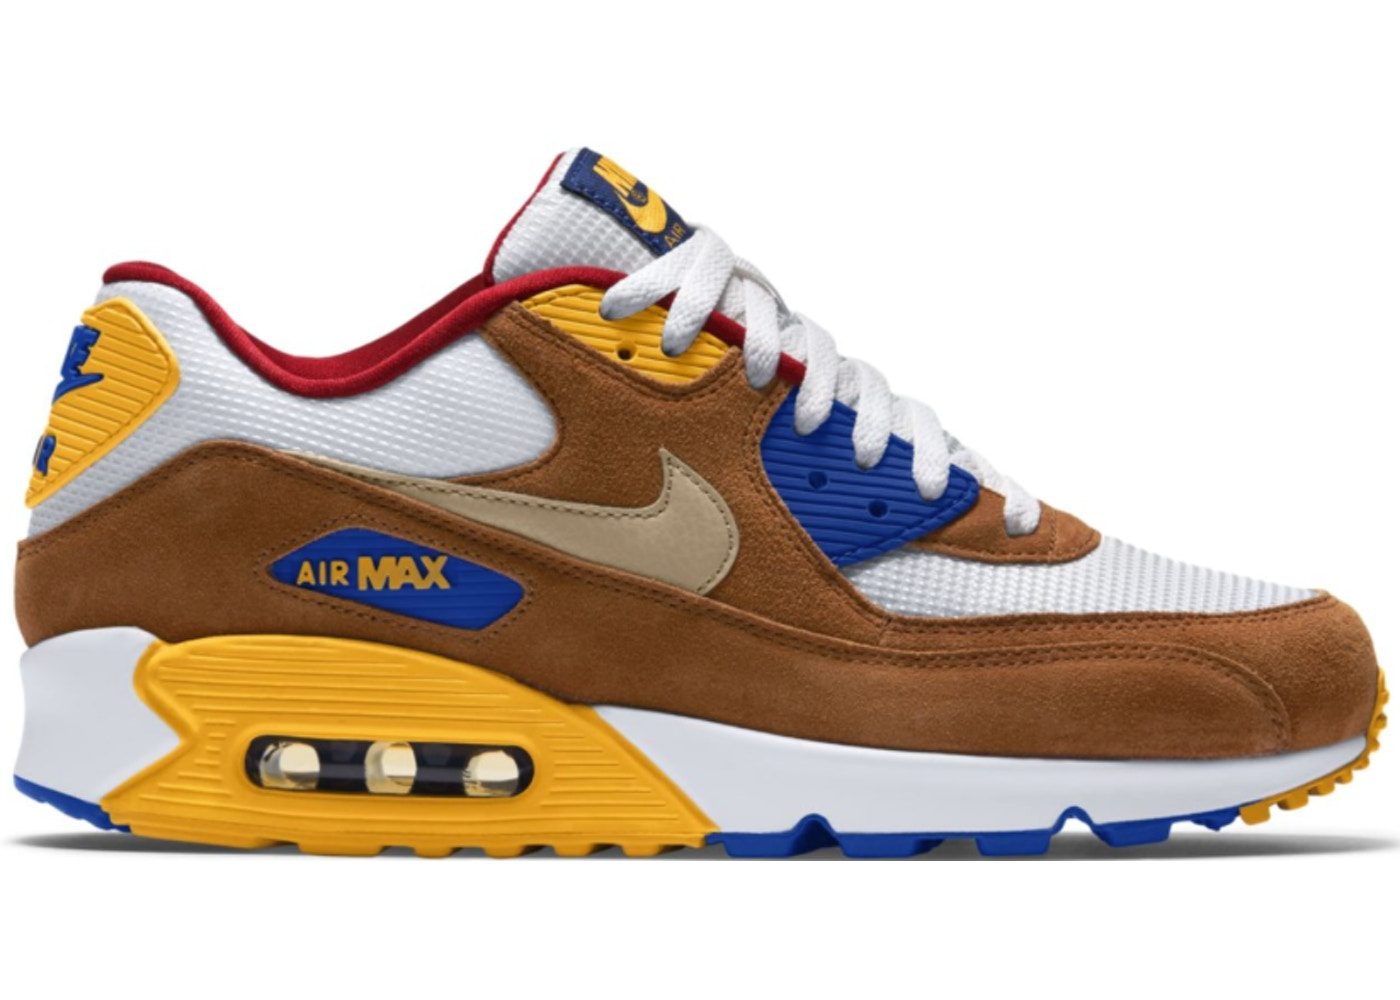 ナイキ NIKE エア マックス スニーカー 【 AIR MAX 90 CURRY WHITE METALLIC GOLDTAWNYGAME ROYAL 】 メンズ